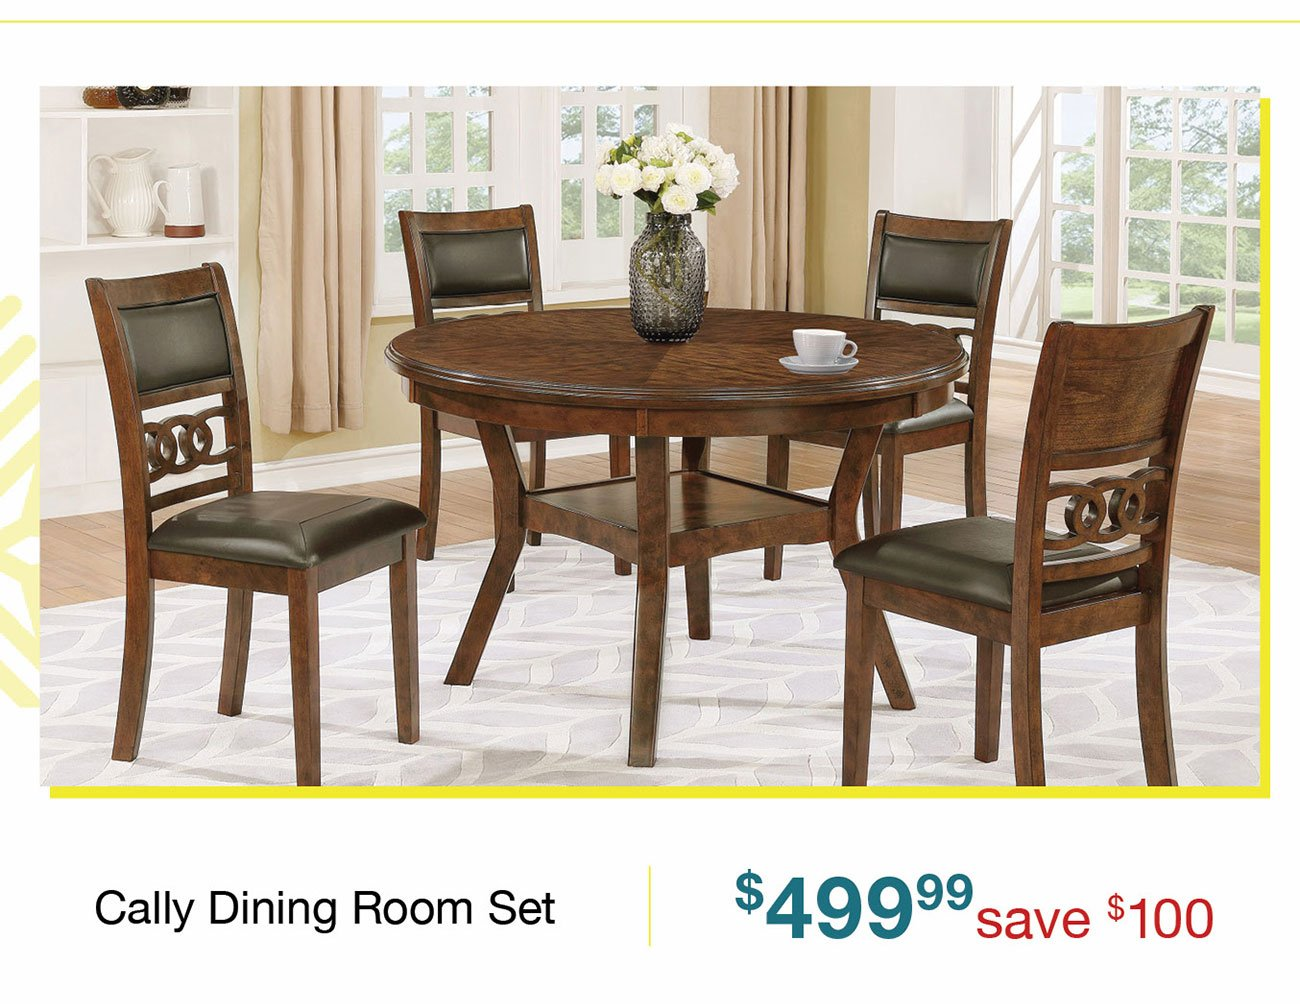 Cally-dining-roomset